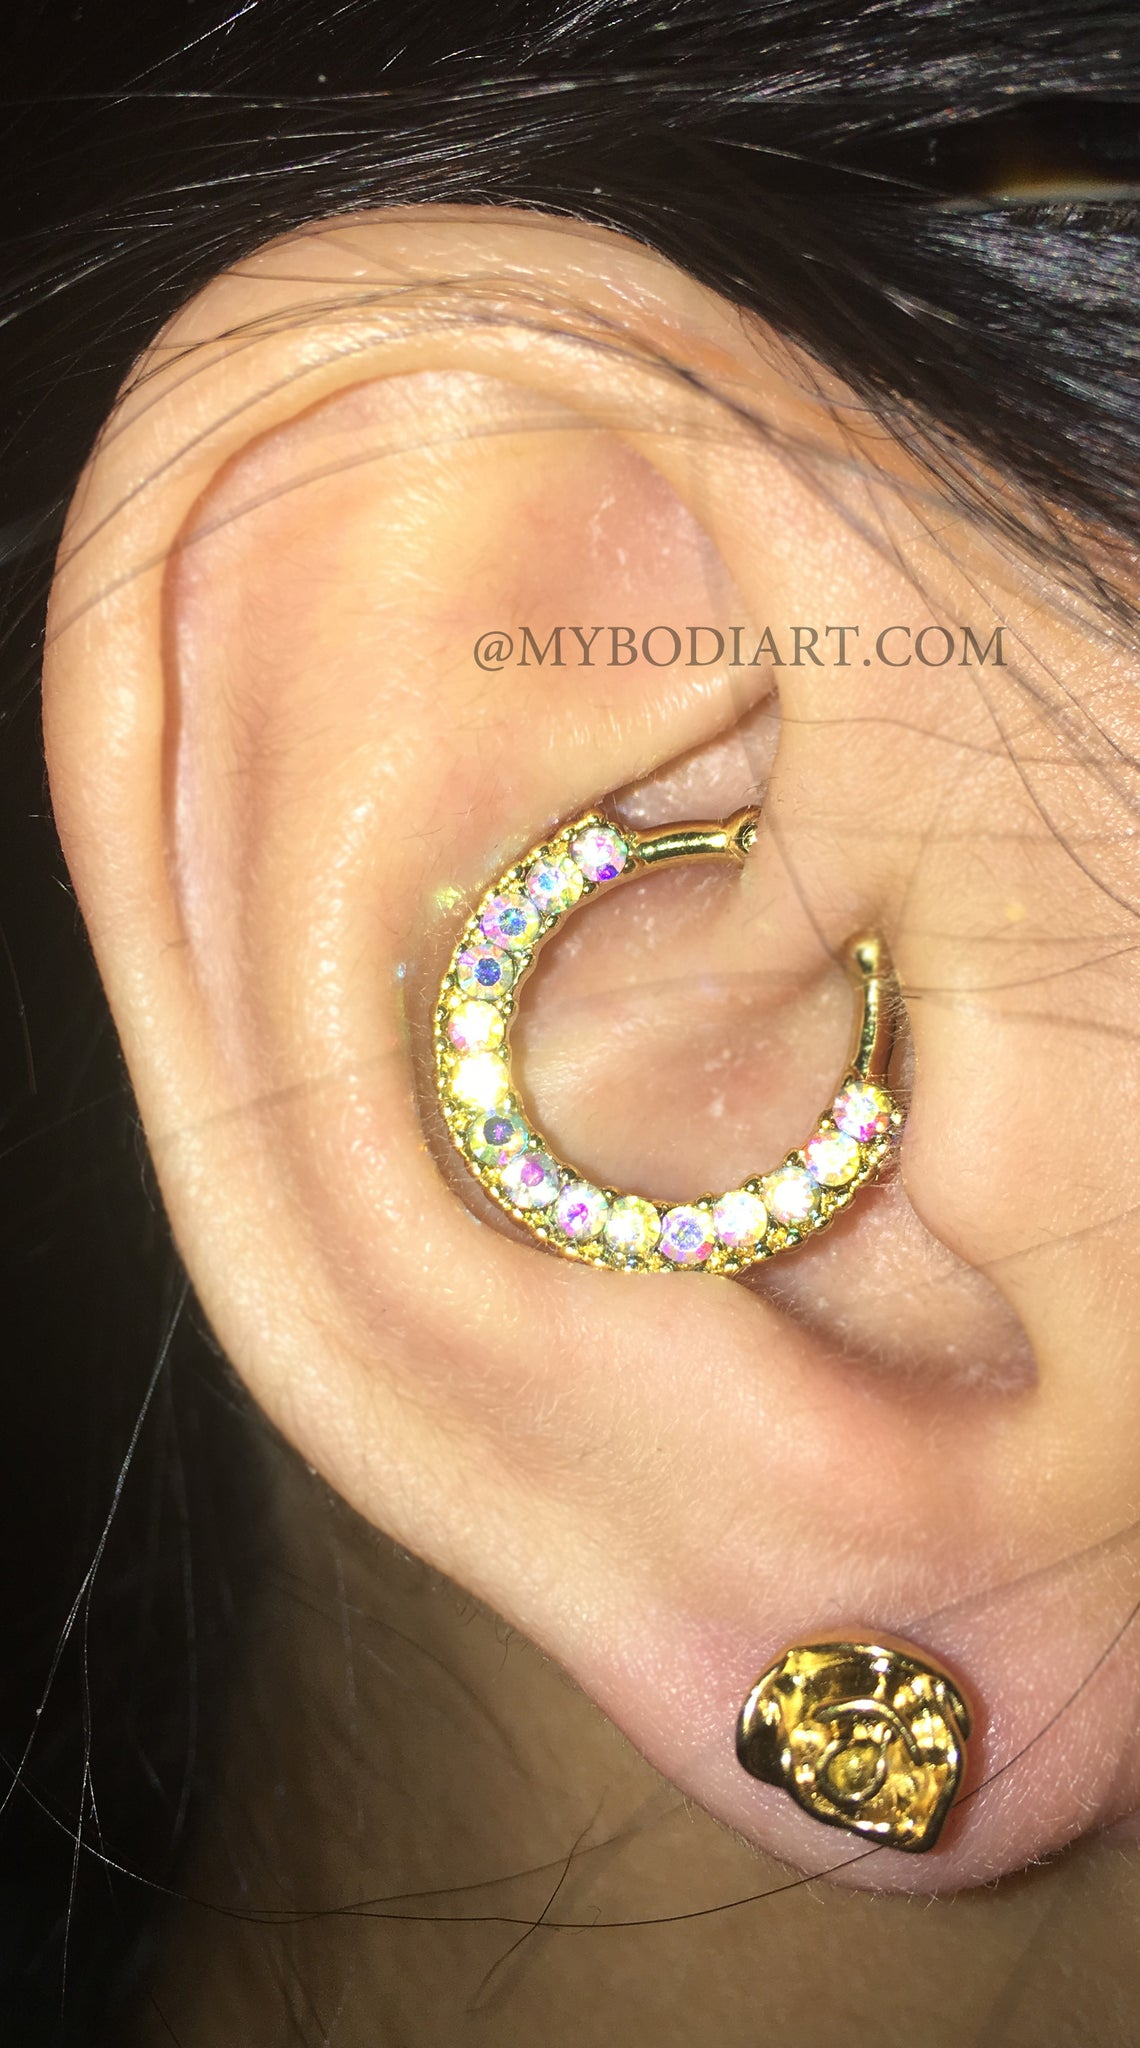 Popular Teenager Ear Piercing Ideas - Gold Daith Ring Hoop Earring - Rose Ear Lobe Stud - at MyBodiArt.com